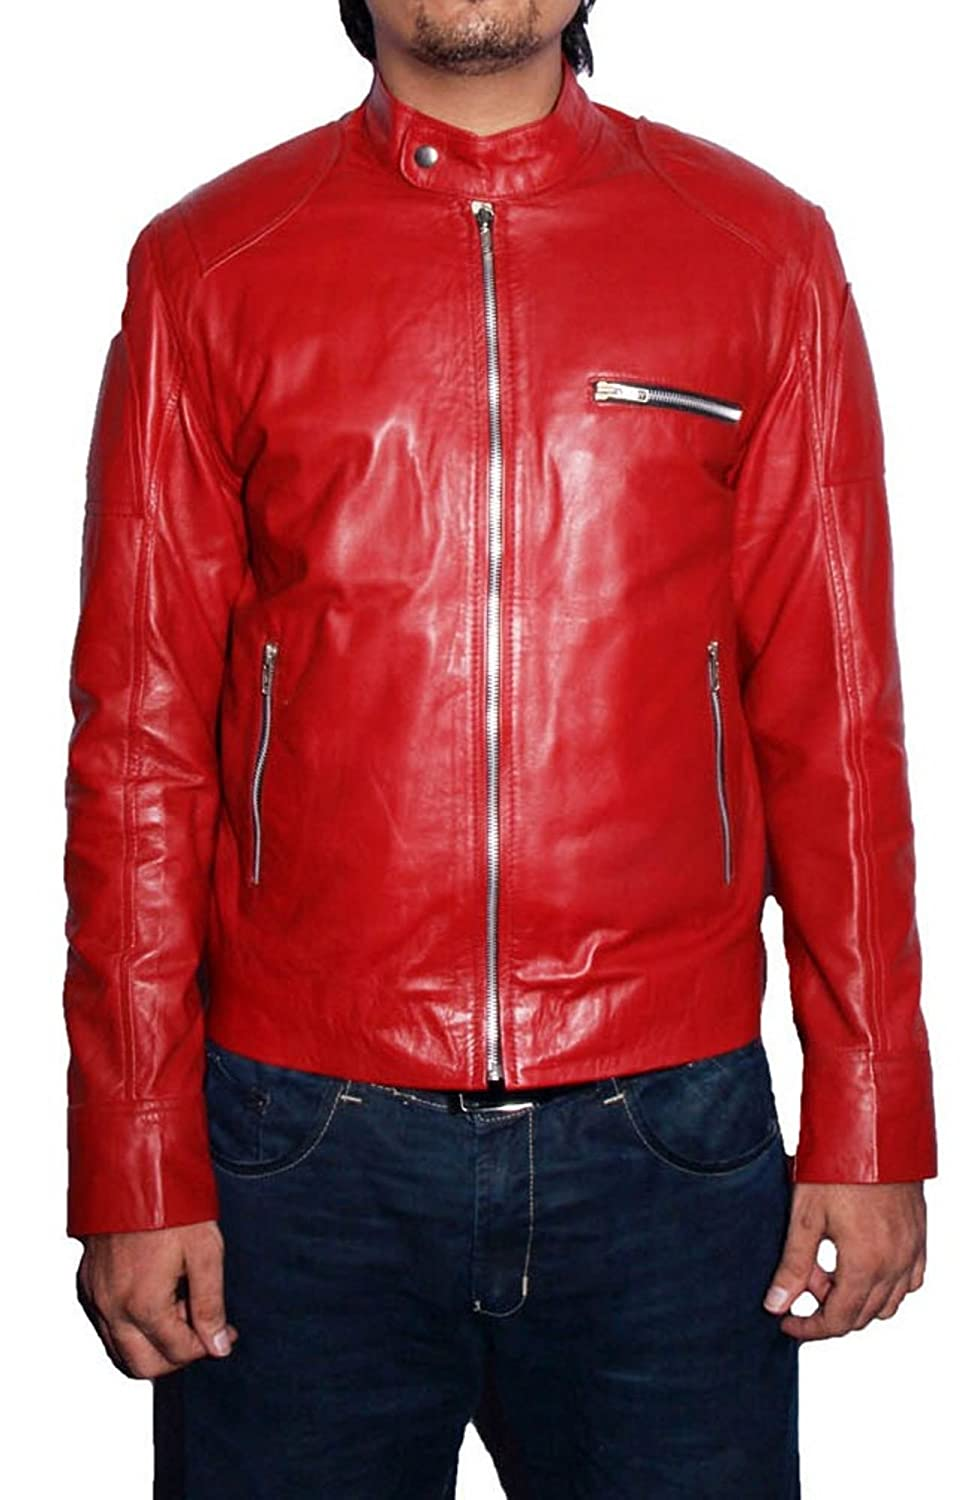 Men's Martin Sheep Red Leather Jacket